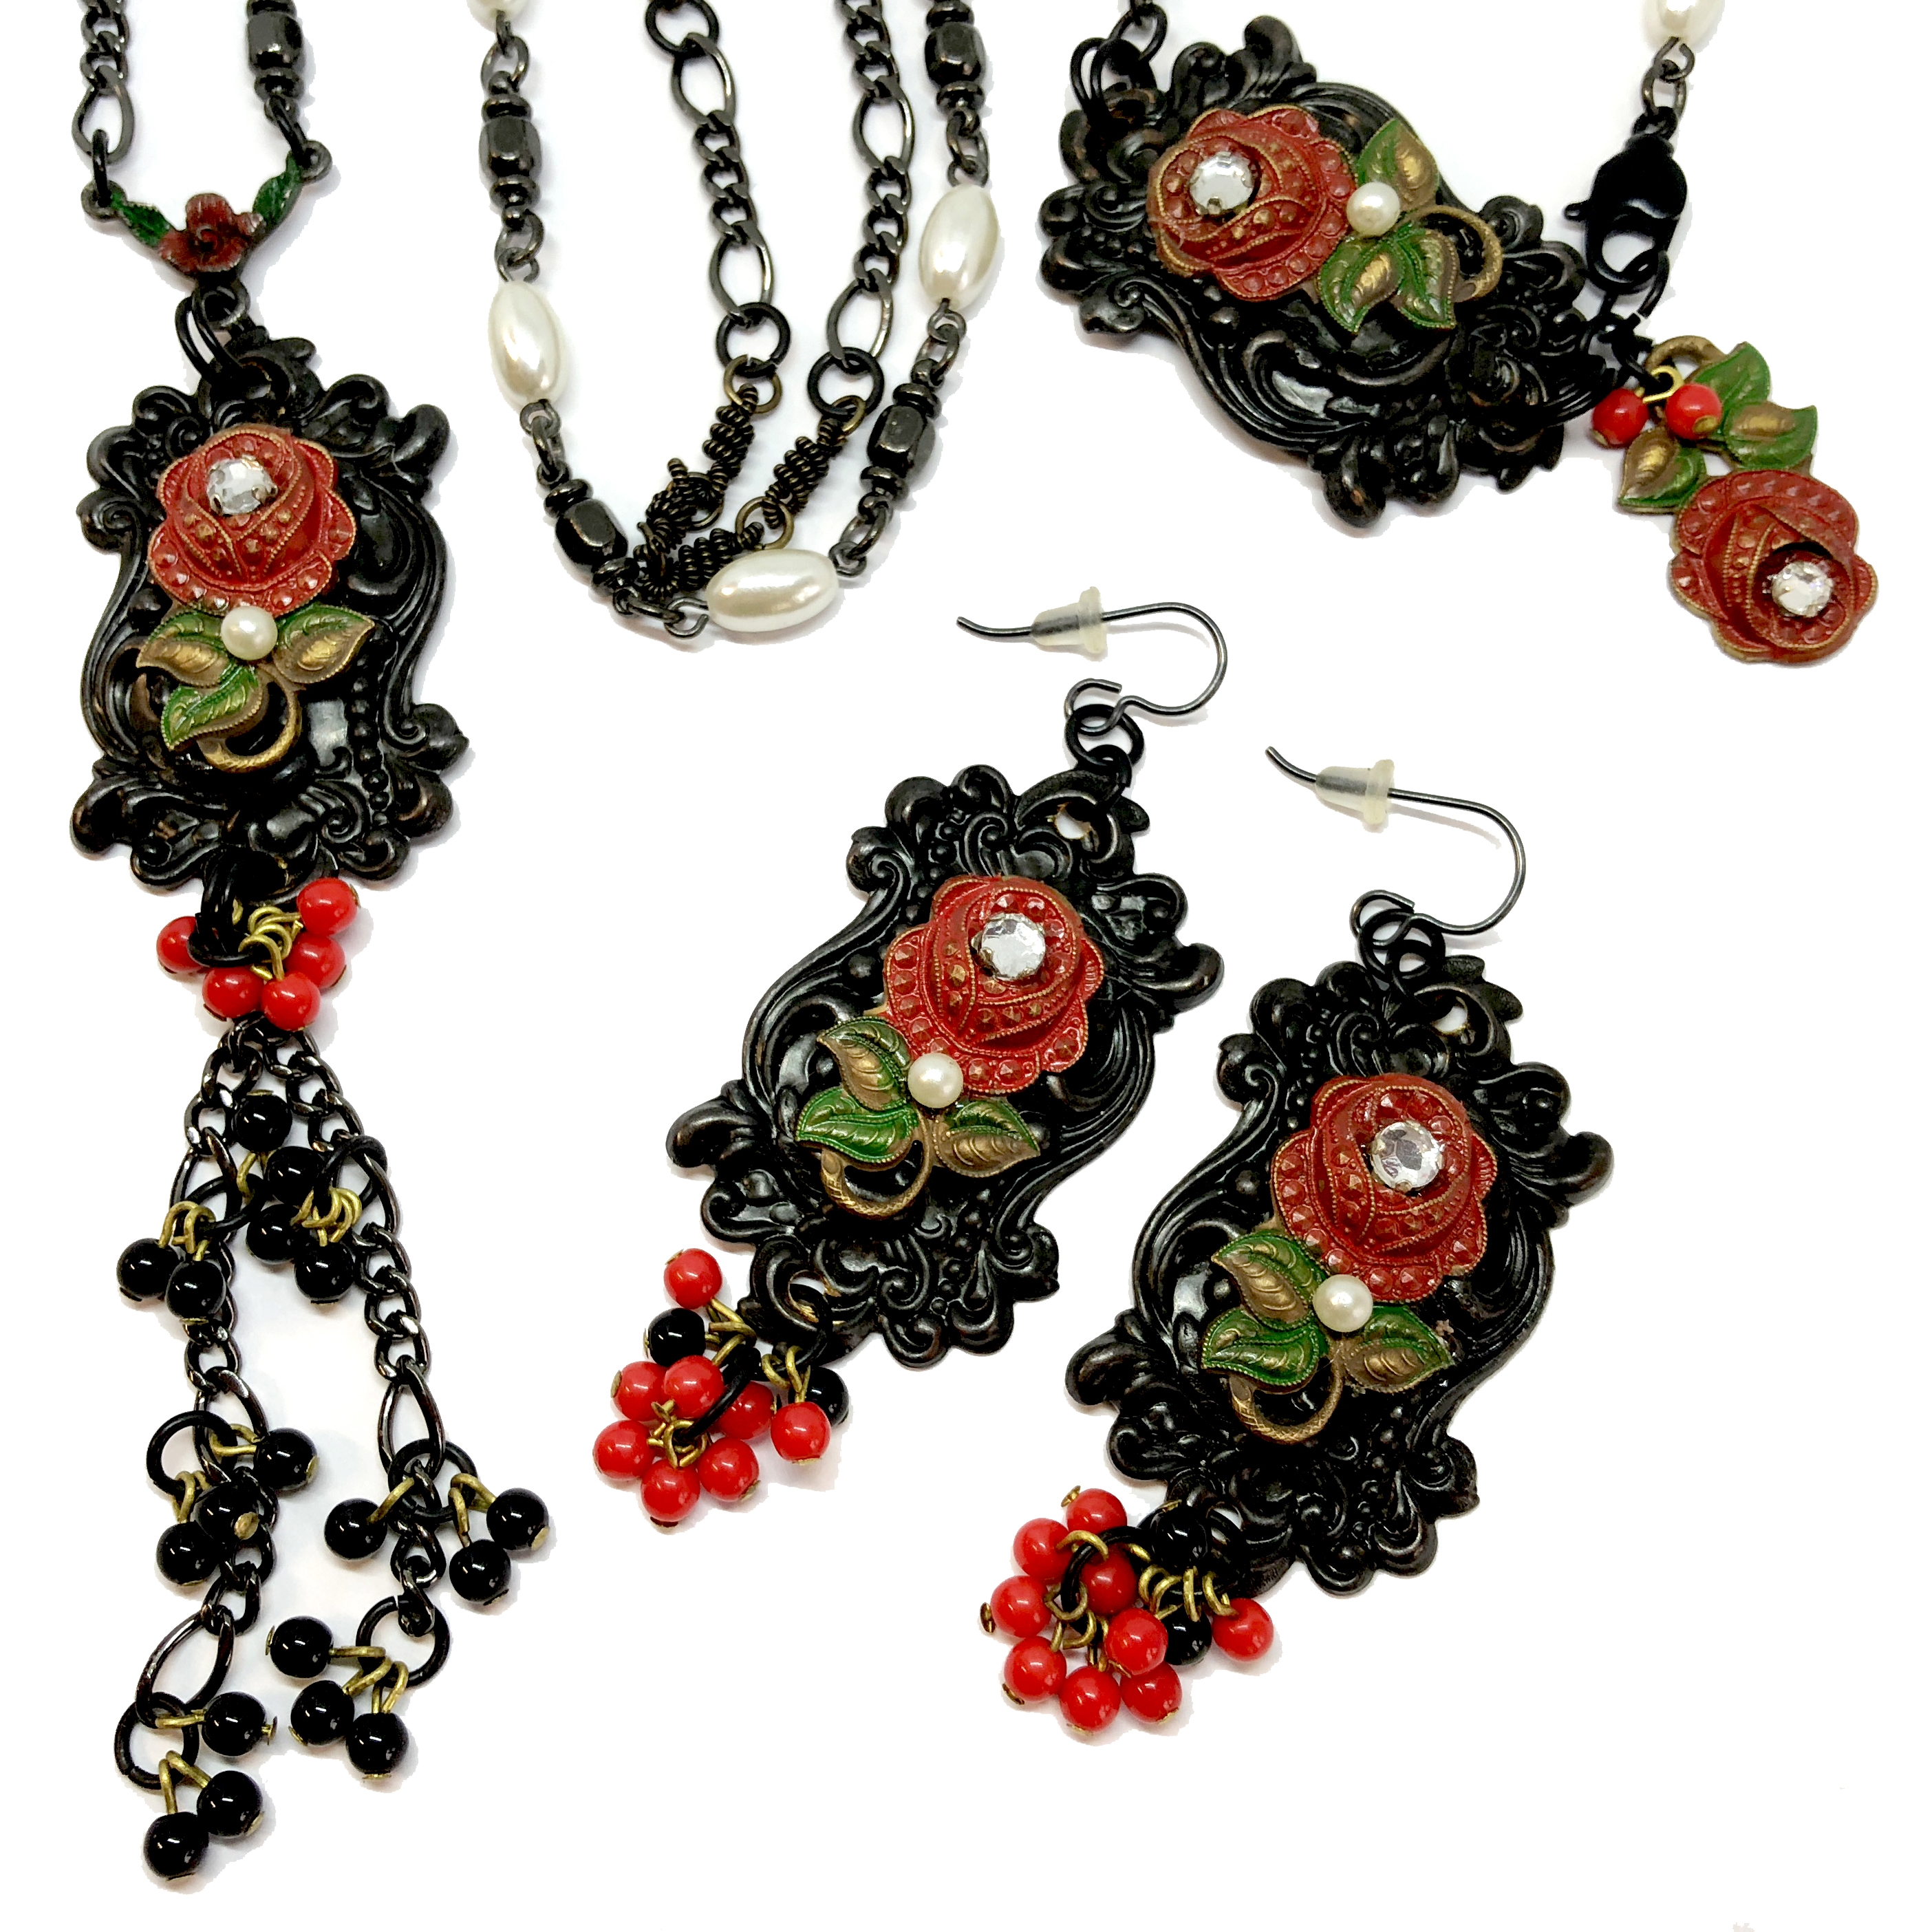 Parure Set, Necklace, Bracelet, Earrings, 05359, coil chain, brass red rose, bsue boutiques, college necklace, necklace making, jewelry making, jewelry set, red bead college, bsue boutiques, 3 piece jewelry set, antique black, brass rose jewelry set